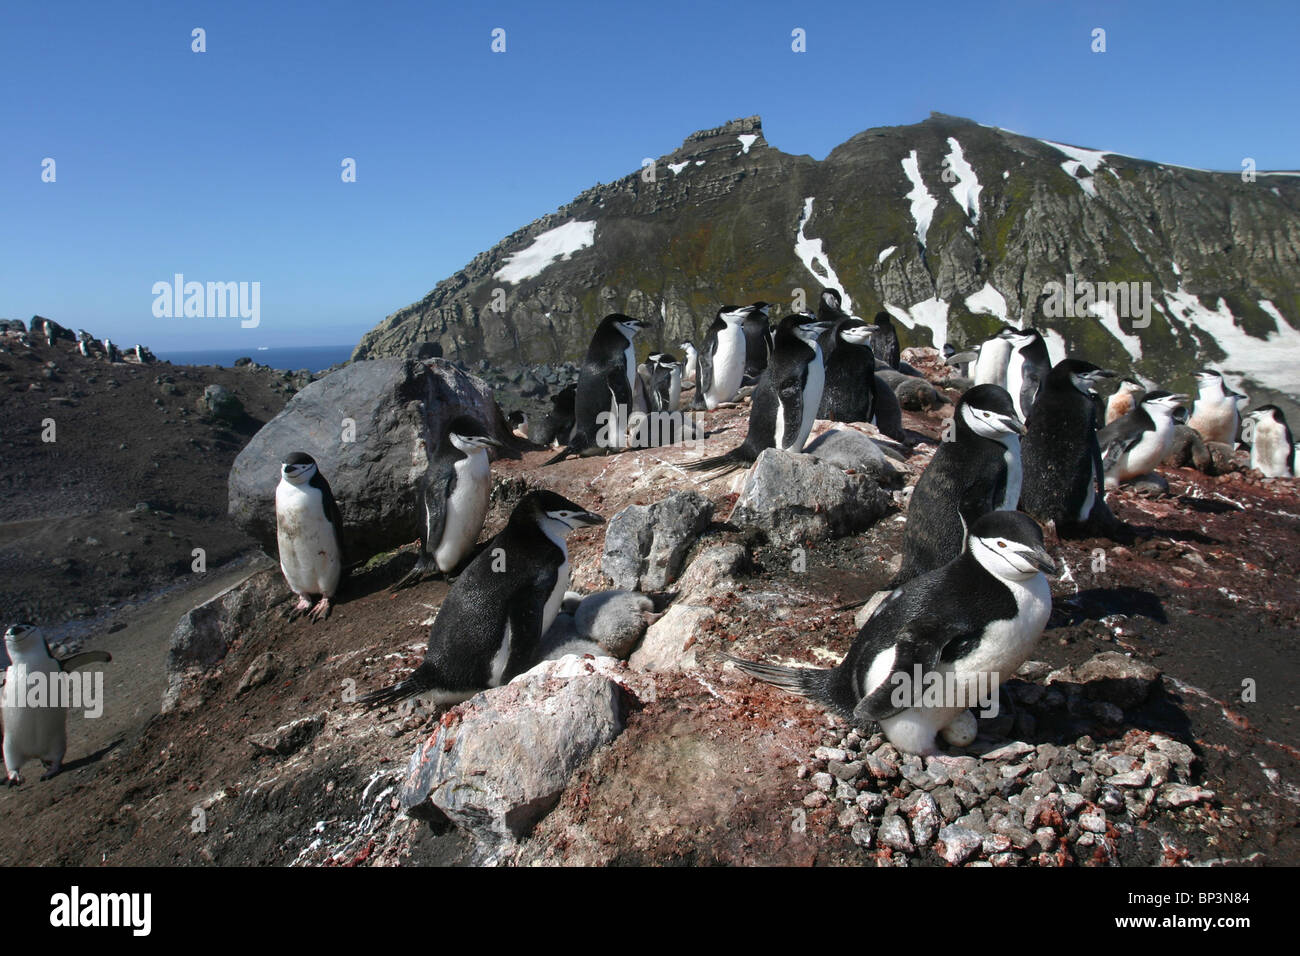 Antarctica, Deception Island, Chinstrap penguins  on nests in massive rookery near Baily Head in afternoon sun - Stock Image